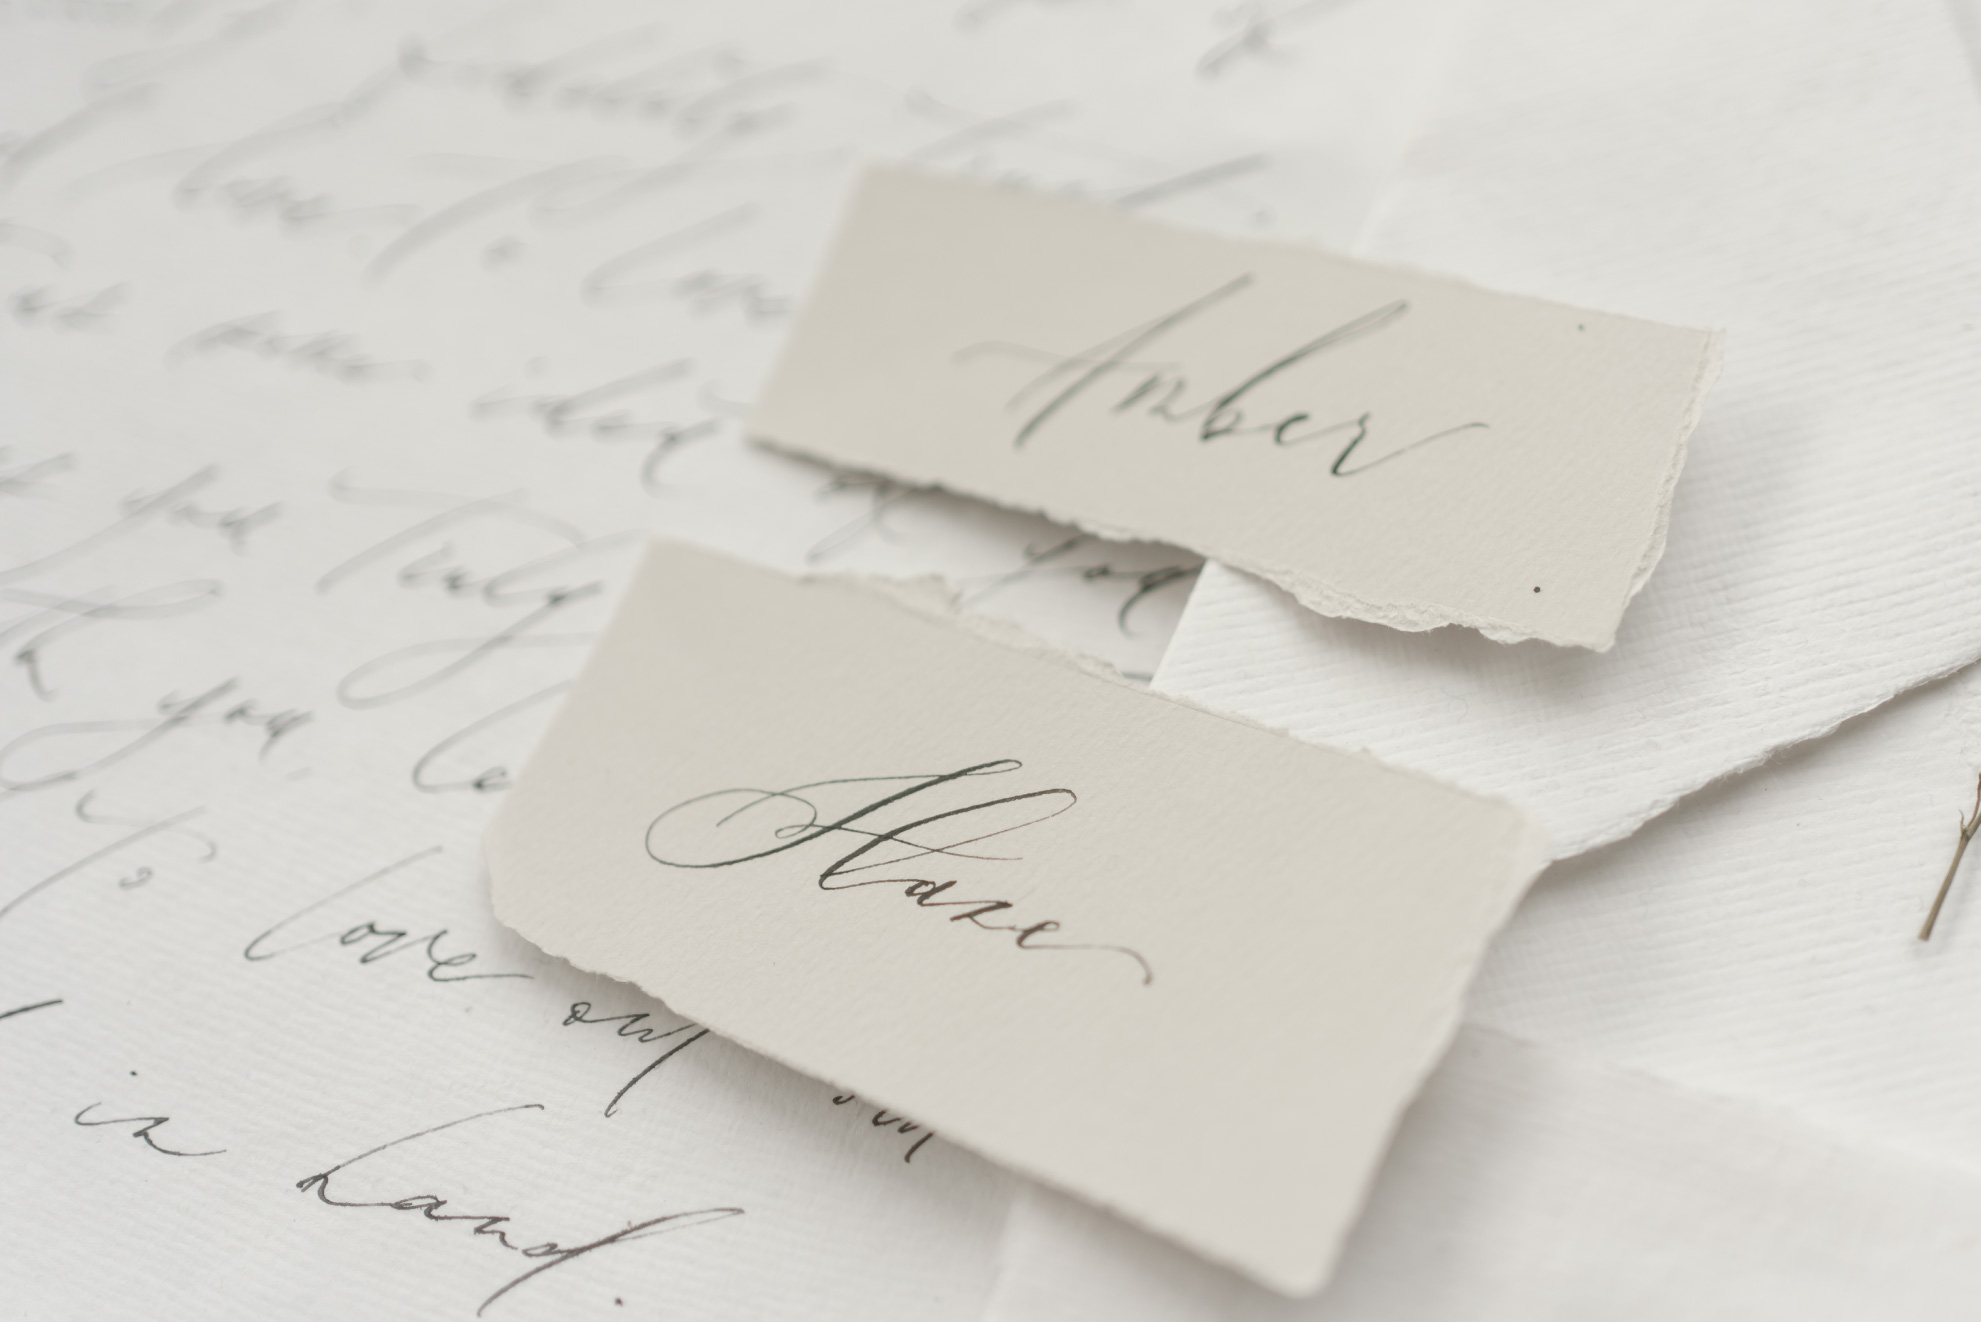 hand-torn-placecard-with-couplss-name-in-free-script-writing.jpg July 11, 2020 289 KB